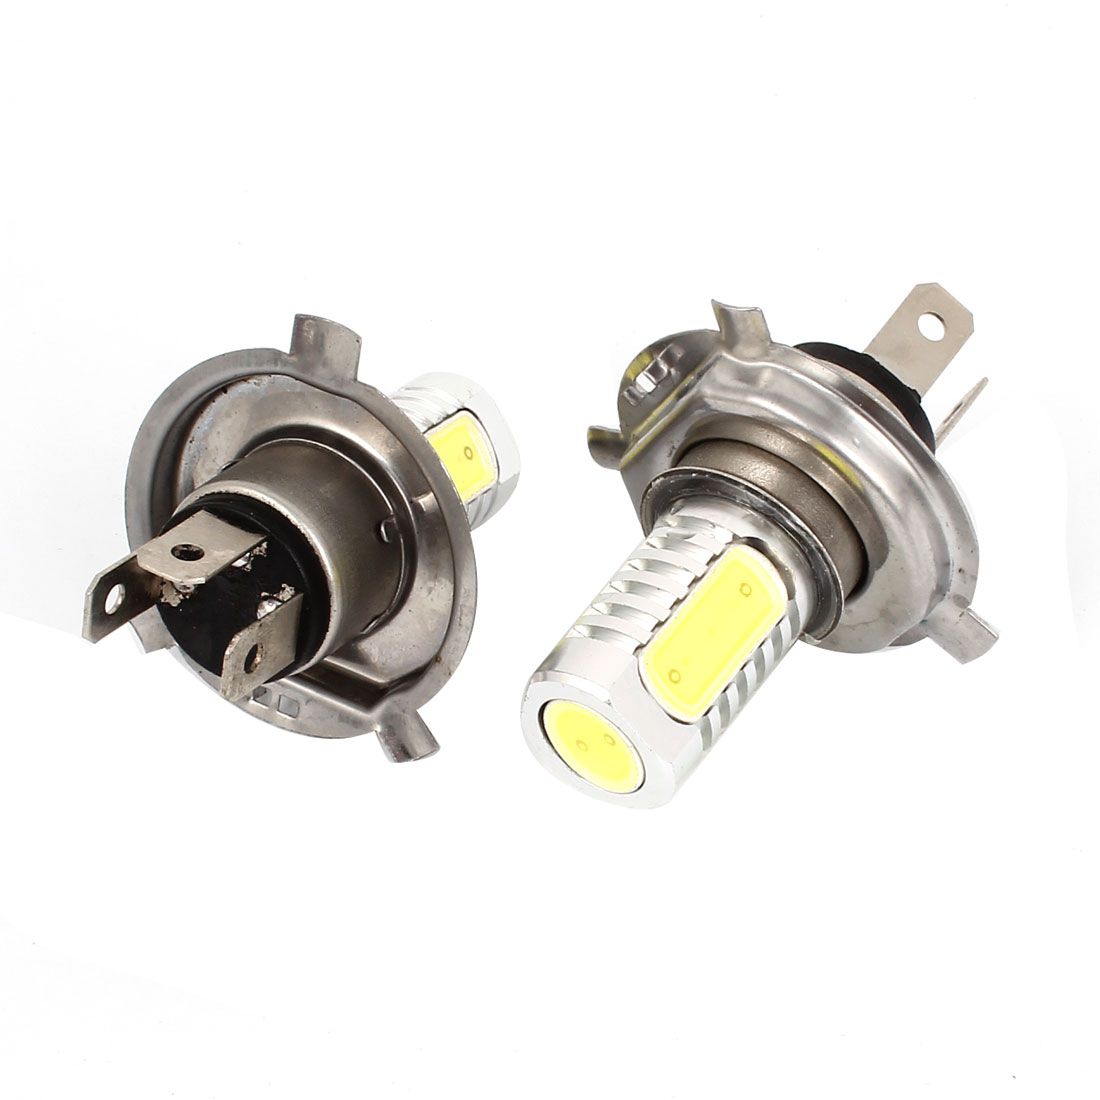 Pair Car 4 SMD LED H4 DRL Daytime Driving Light Foglamp Head Lamp White 6W 12V